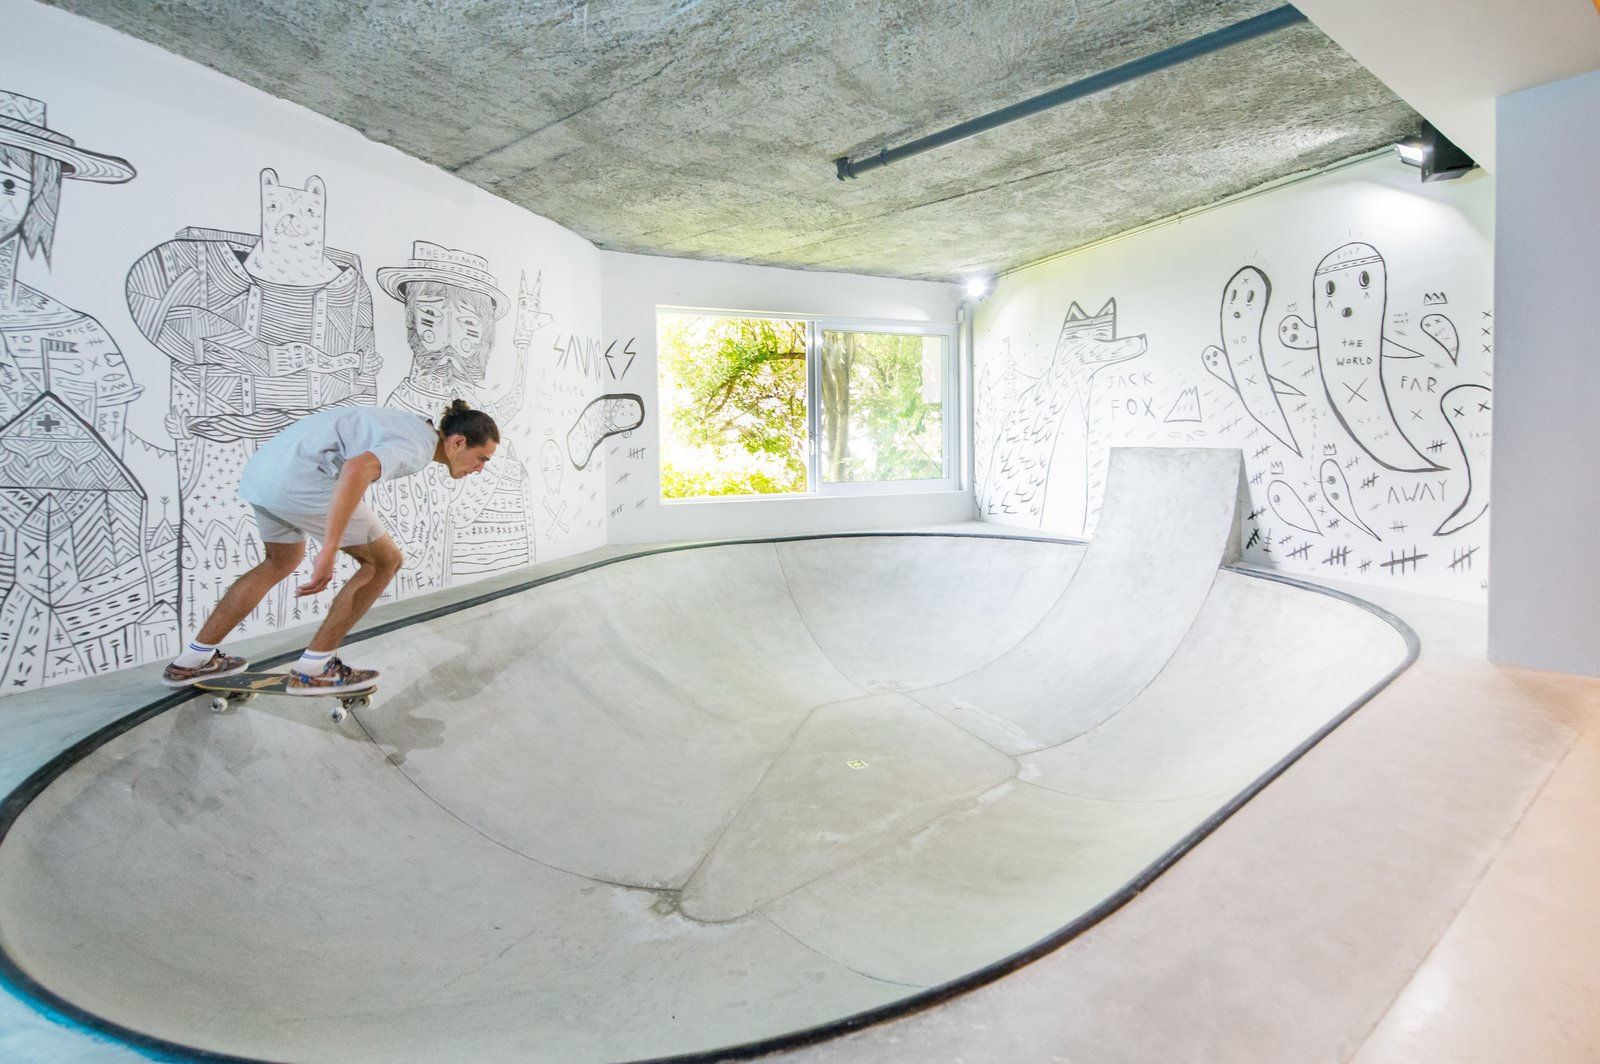 A fully functional concrete skate bowl plays a quintessential role in the layout and movement of the space. With walls lined with custom art by South African street artist Jack Fox, the playful quality of the space is achieved.  Photo 2 of 6 in A Skateboarding Devotee Gets the Lounge of His Dreams